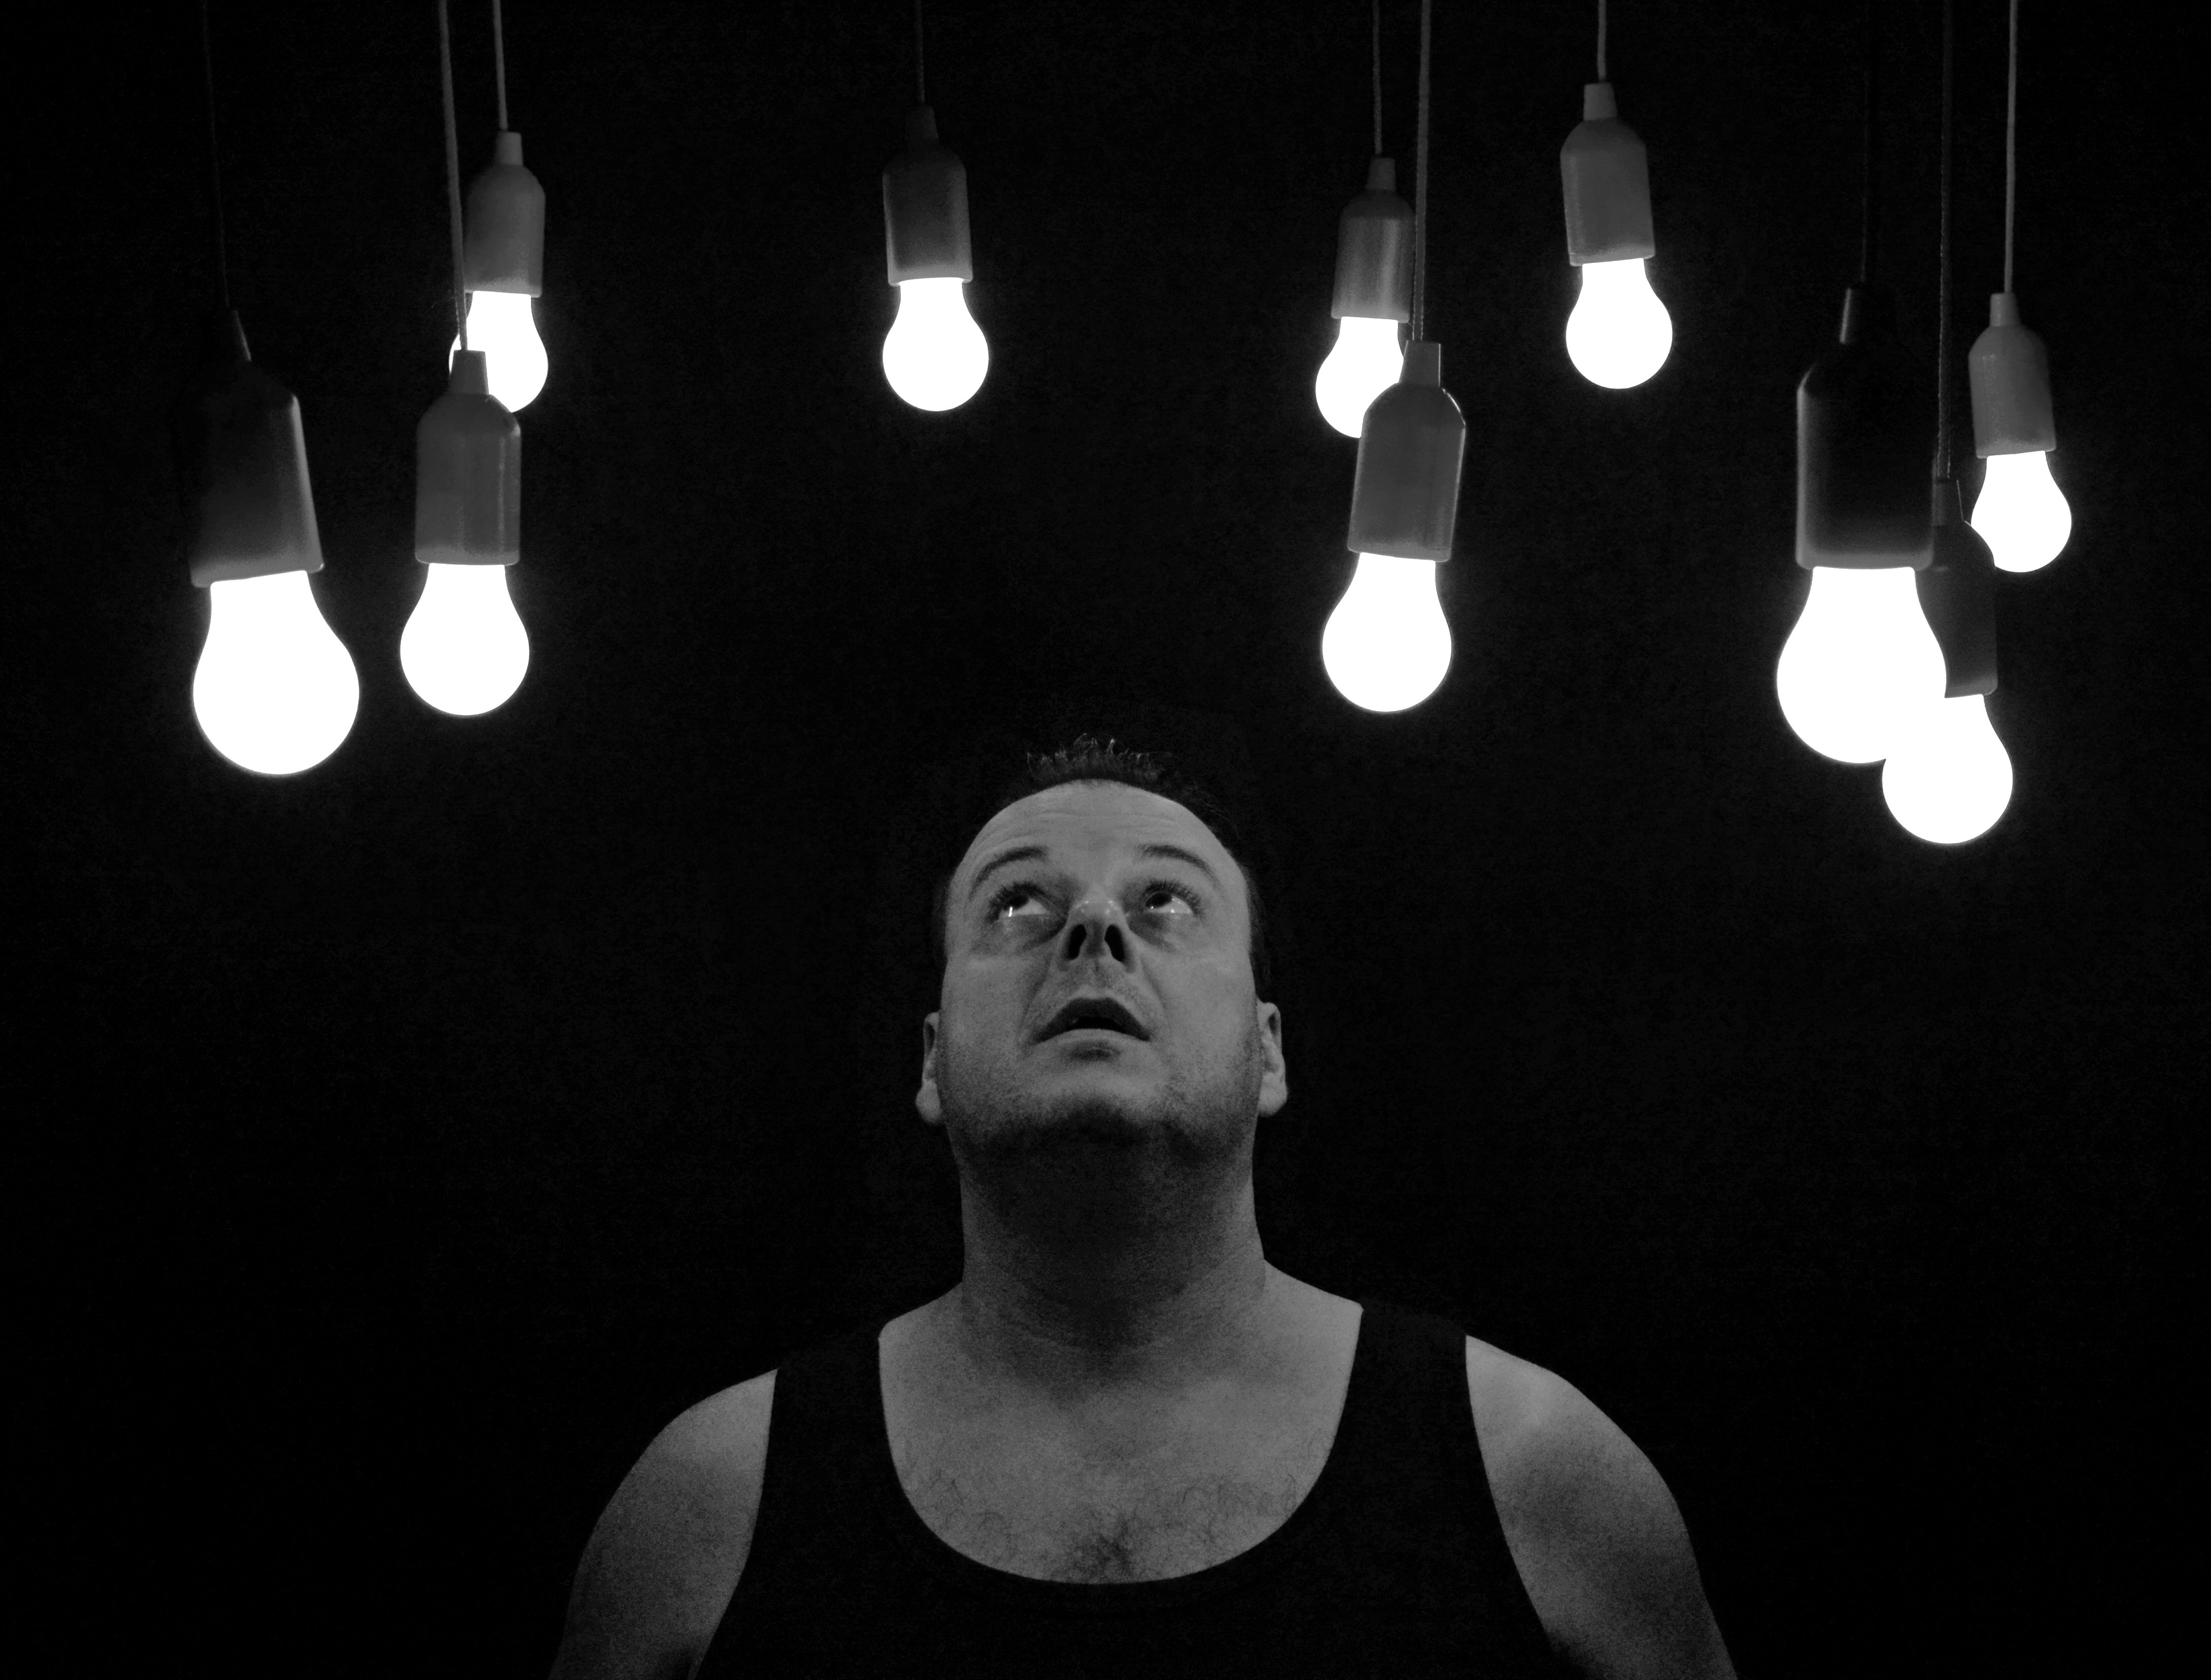 Man is looking up at lights that shine down on him in darkness.